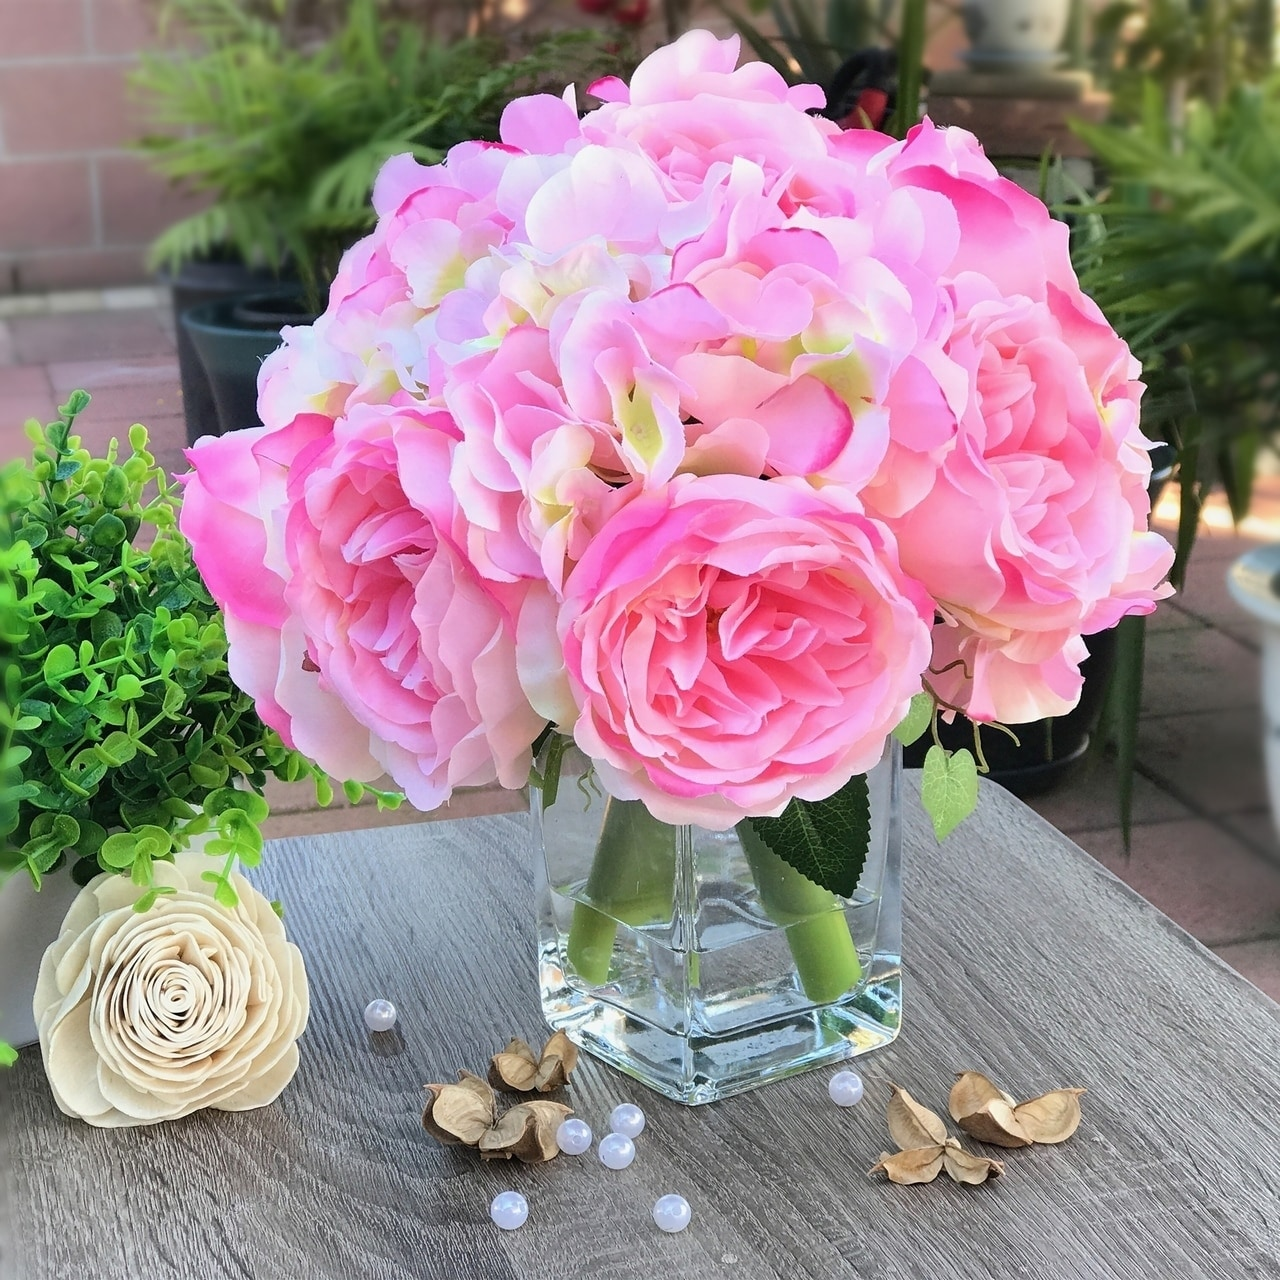 Enova Home Pink Peony And Hydrangea Mixed Faux Flower Arrangement With Clear Glass Vase Overstock 27754631